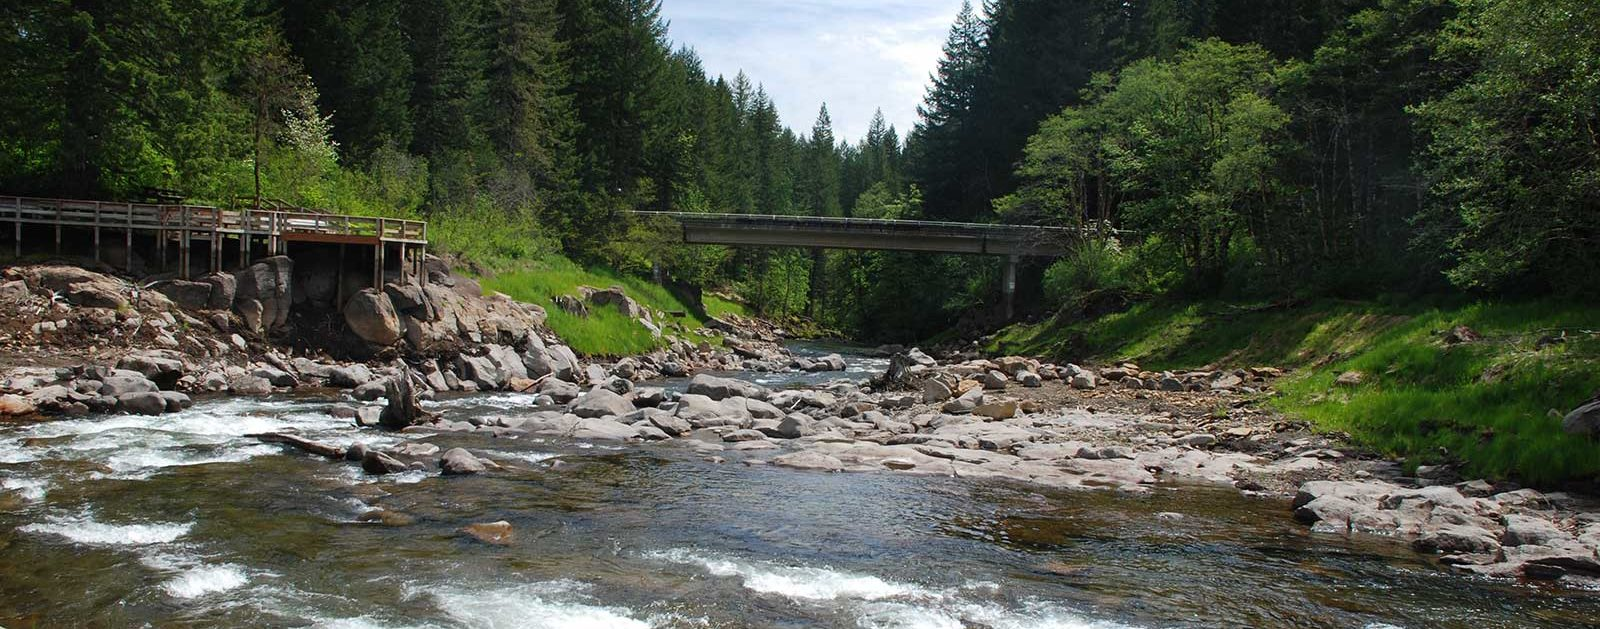 Trout Creek after Hemlock dam removal | Thomas O'Keefe